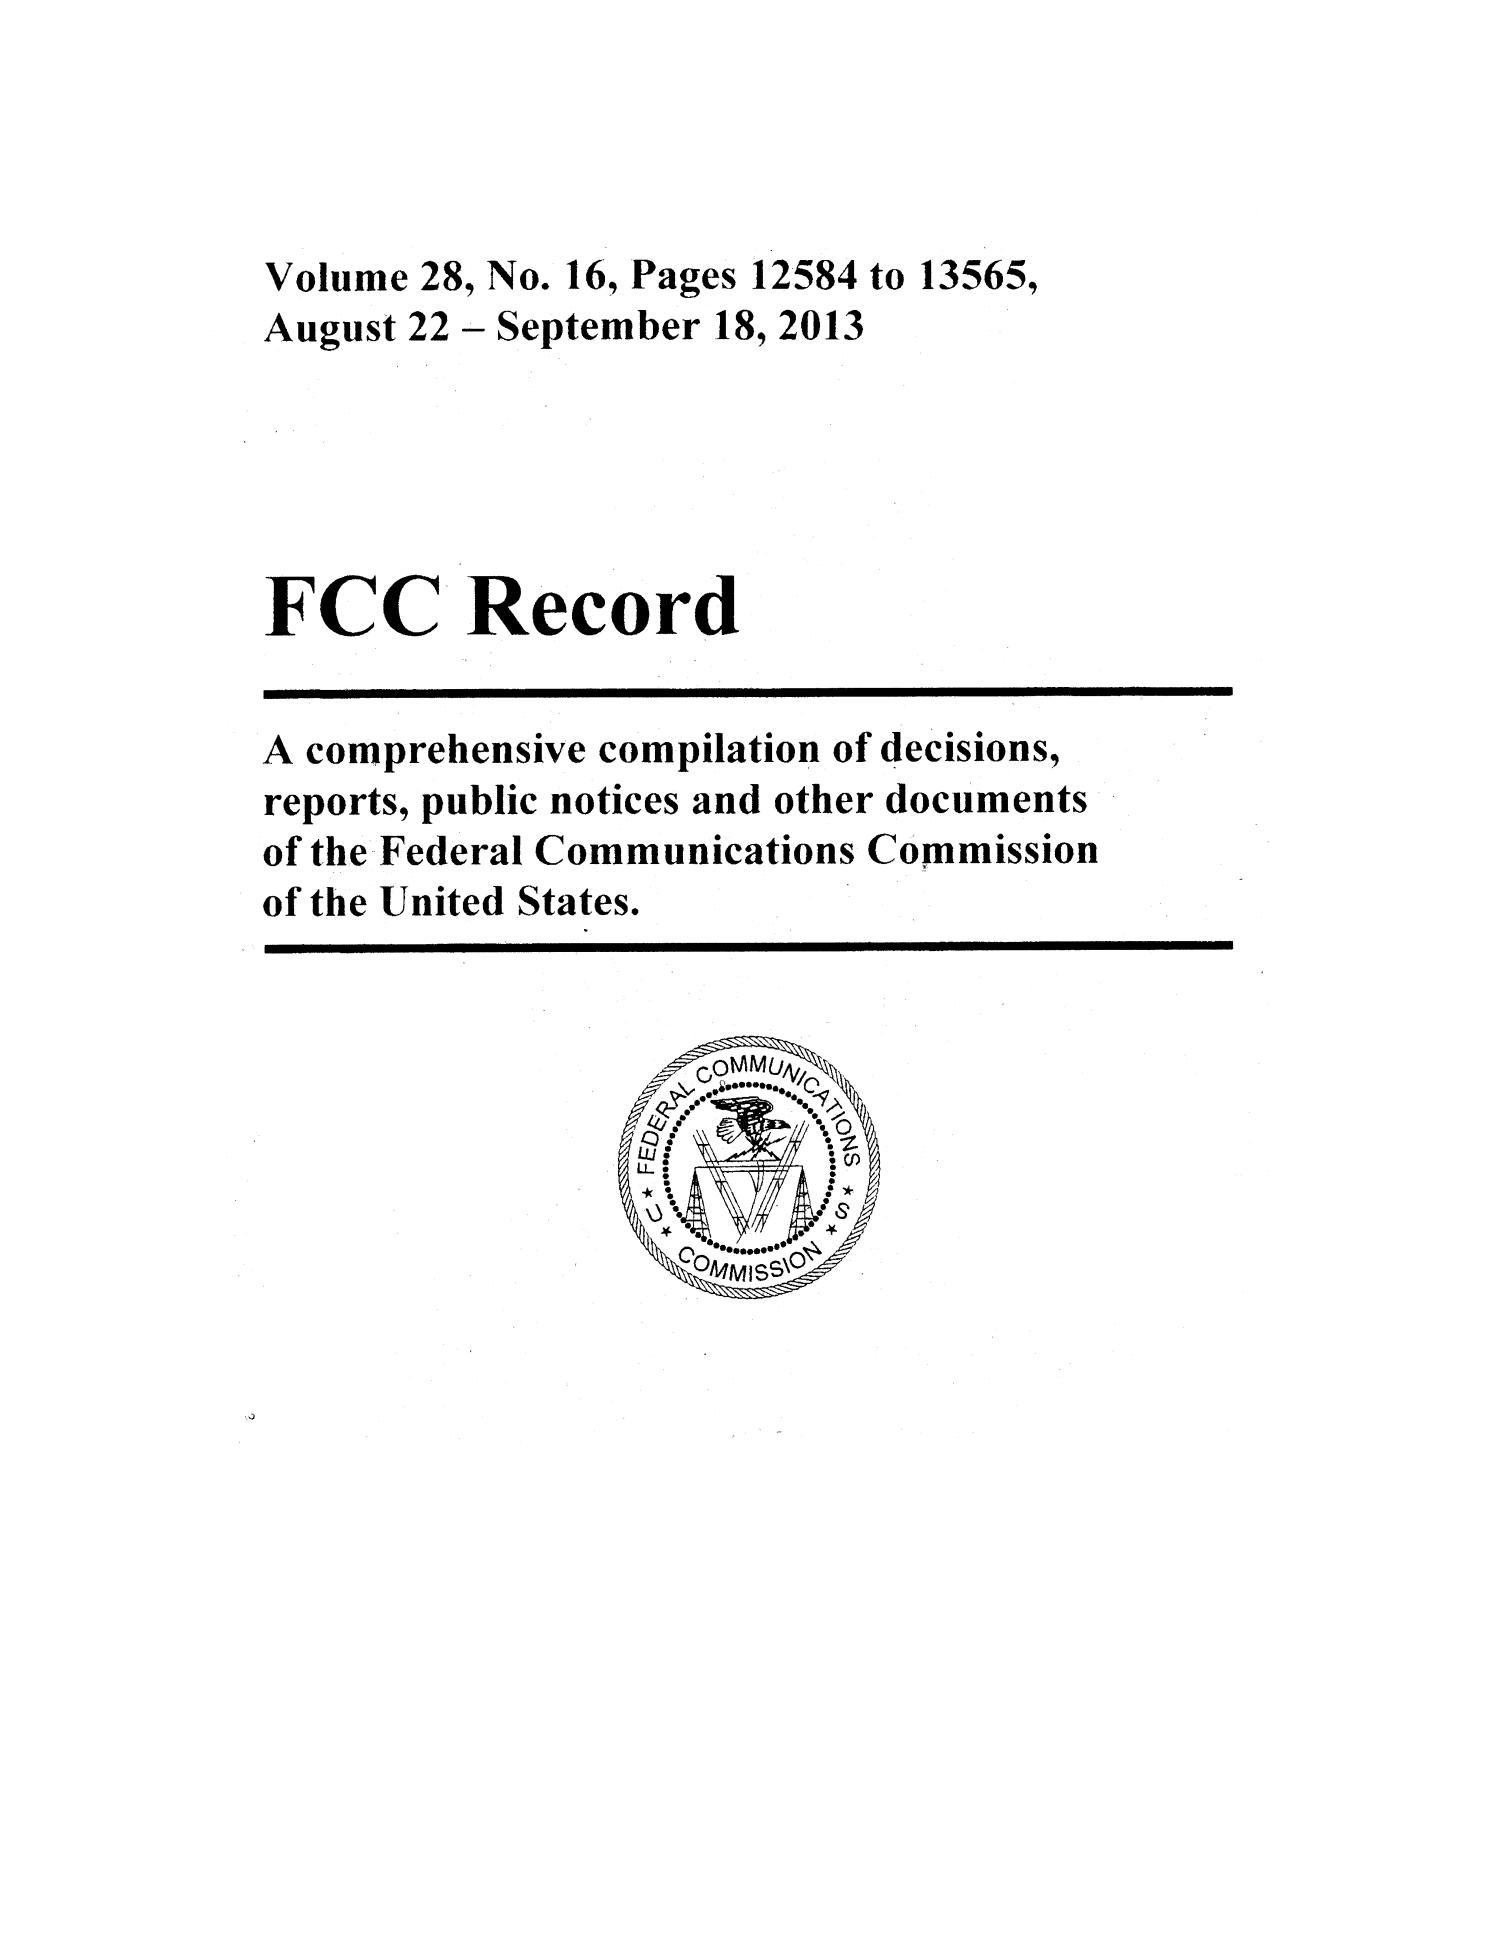 FCC Record, Volume 28, No. 16, Pages 12584 to 13565, August 22 - September 18, 2013                                                                                                      Title Page